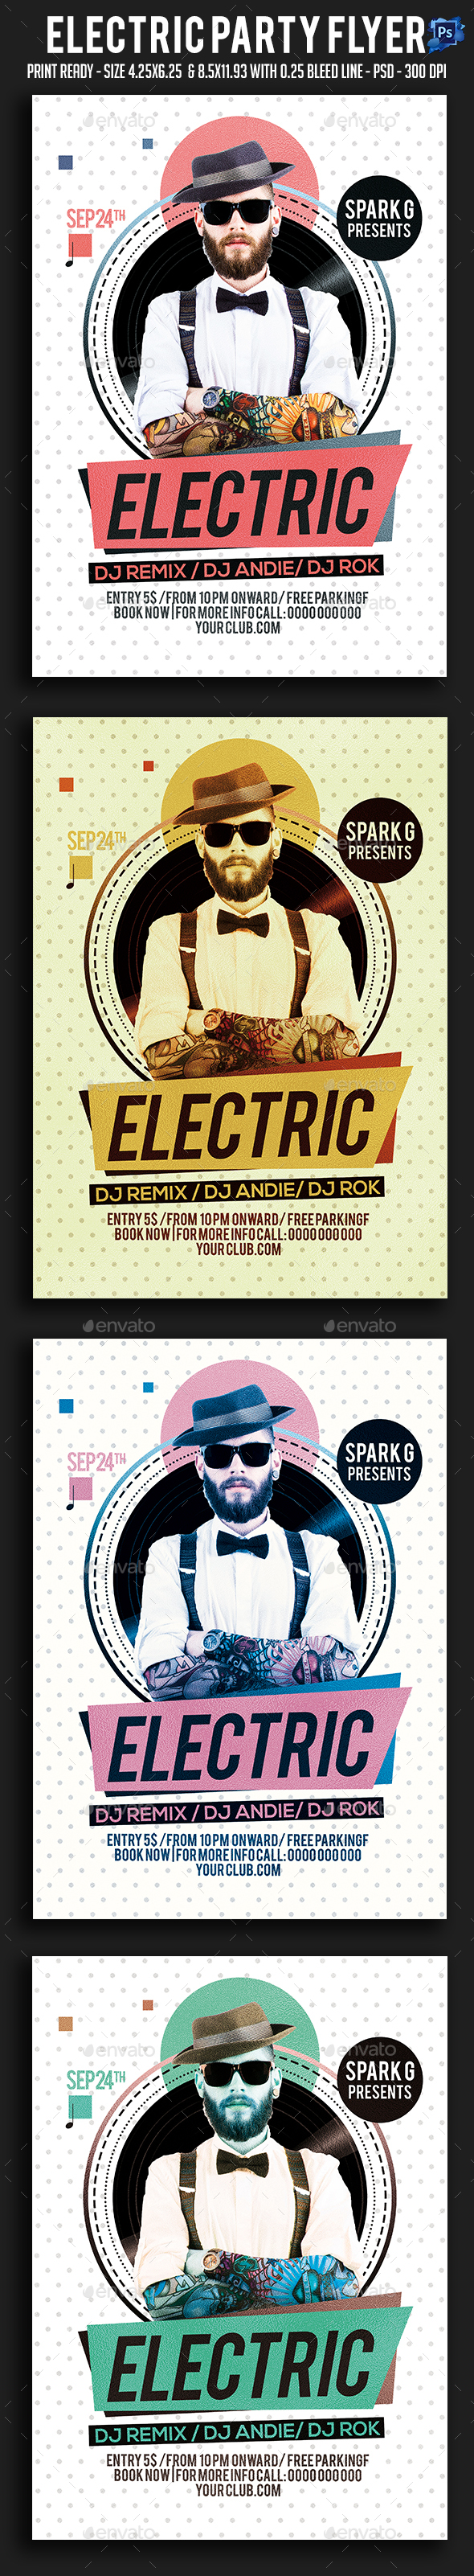 Electric Party Flyer - Clubs & Parties Events